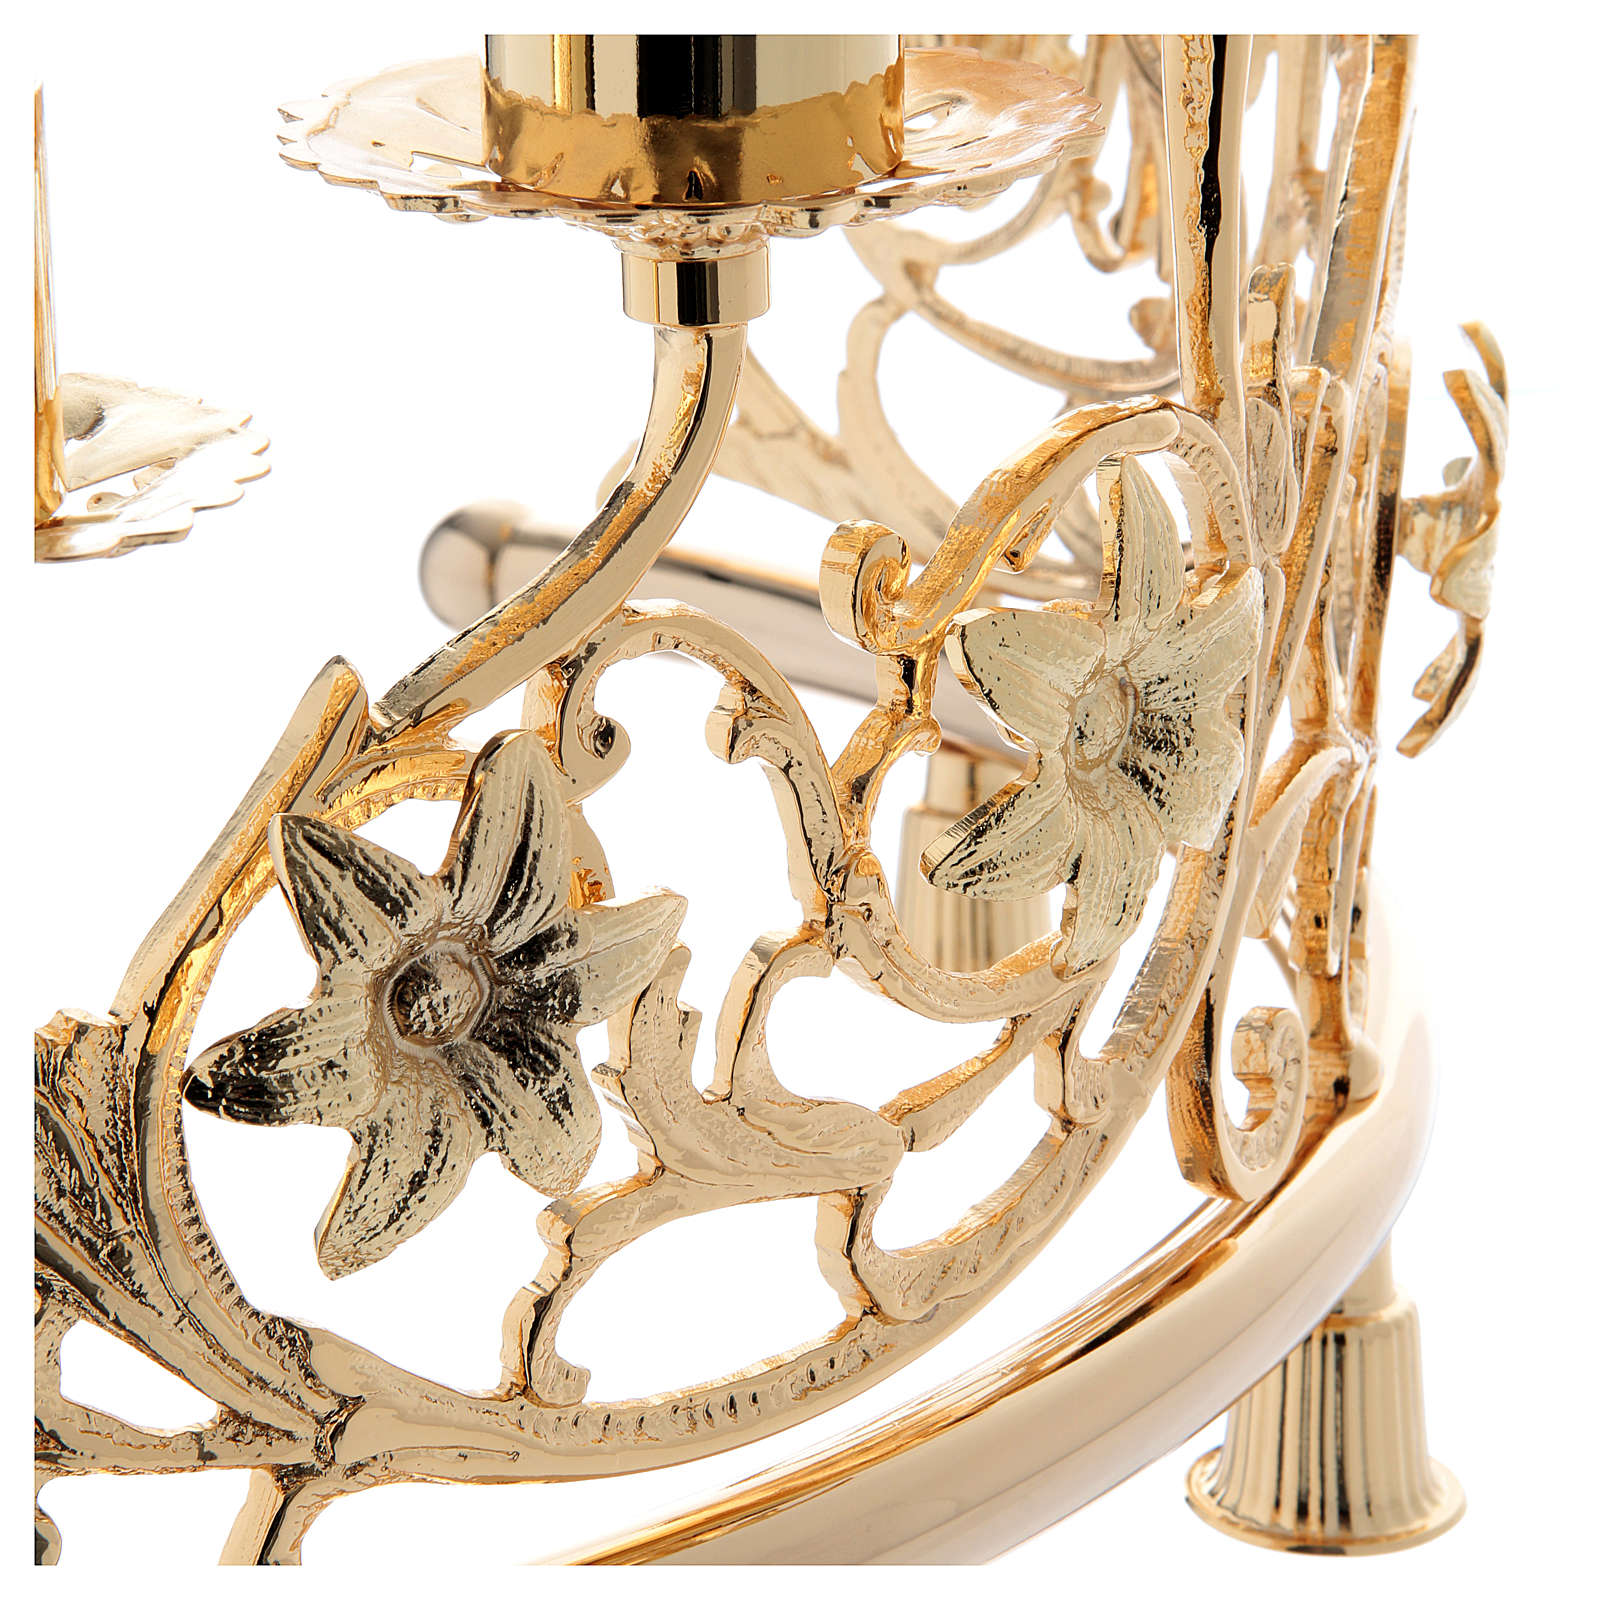 Pair of candelabra with 6 arms in cast brass, Baroque style 30x50cm 4